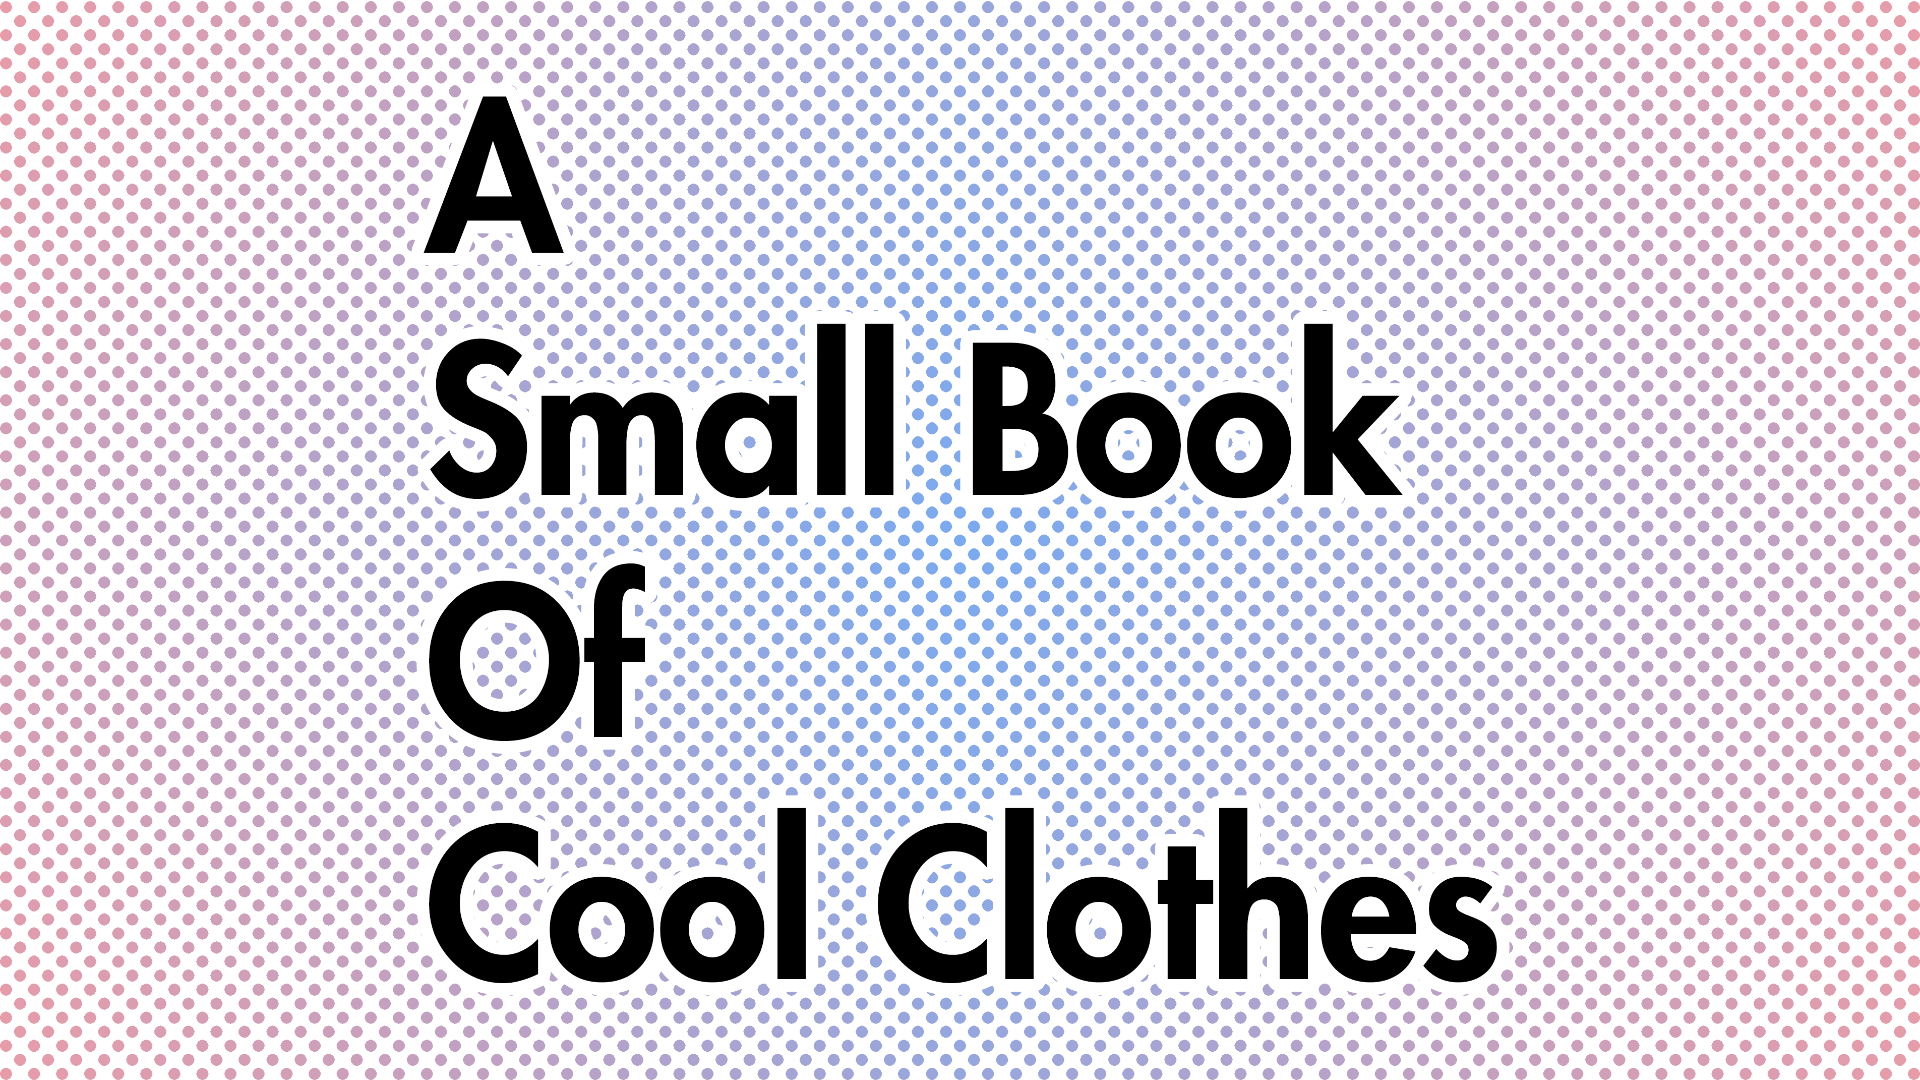 A Small Book of Cool Clothes Vol. 4